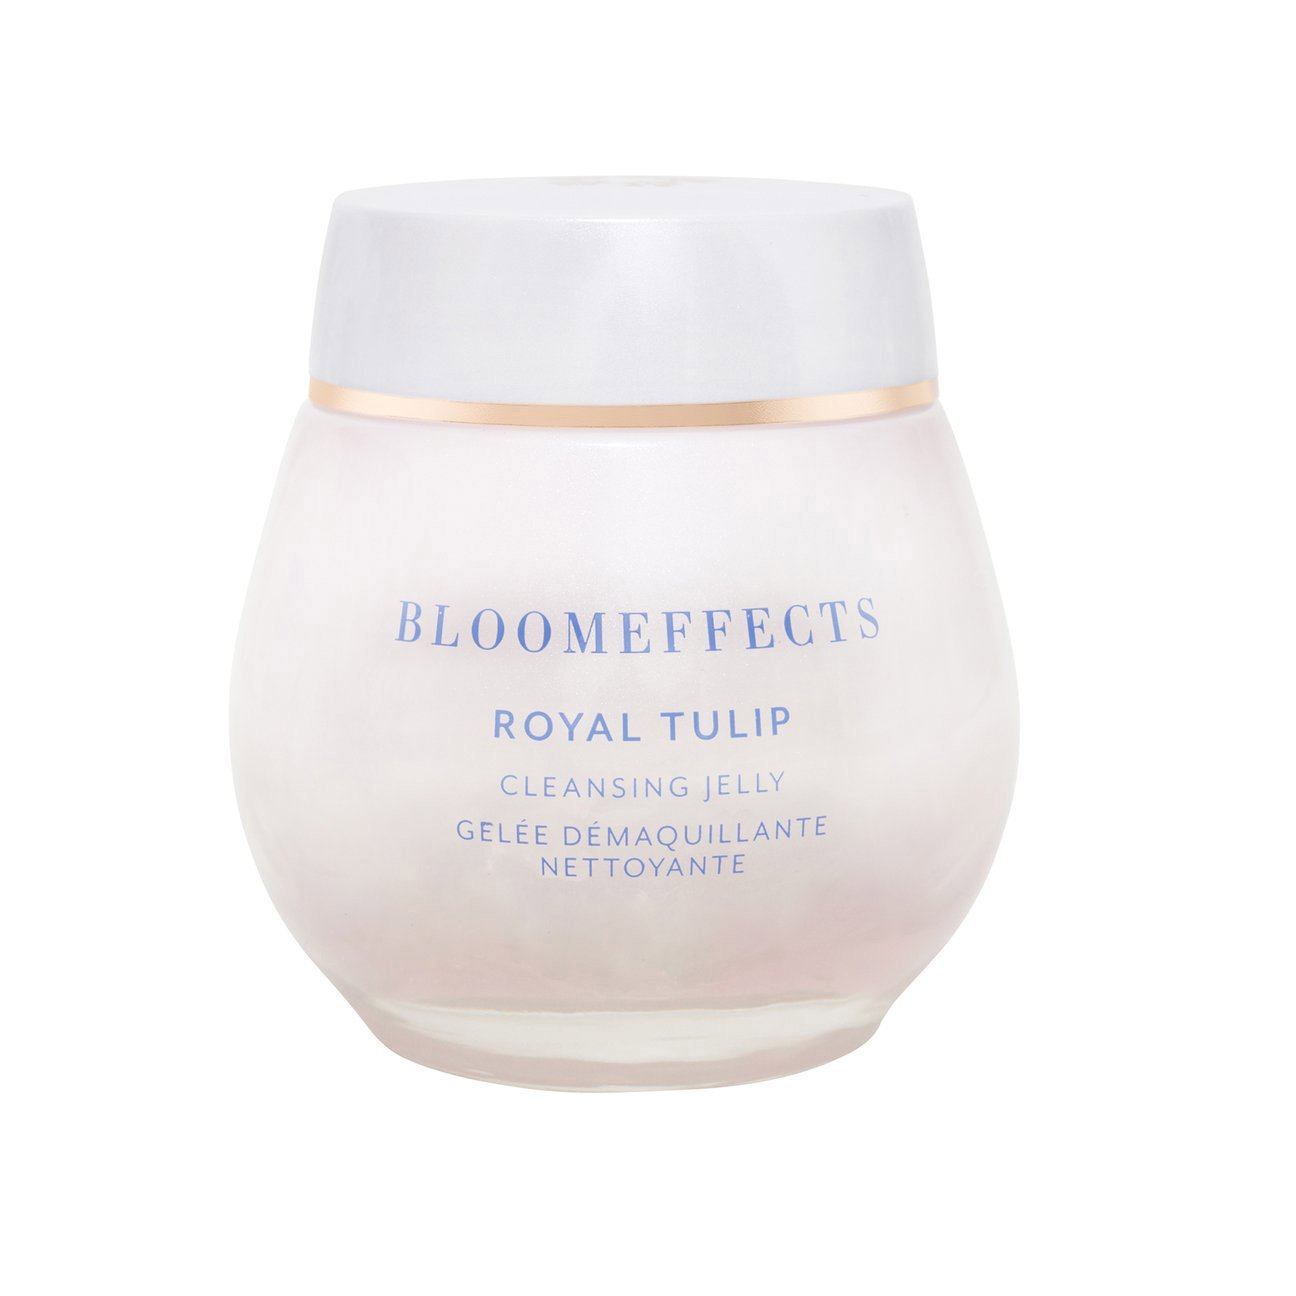 Bloomeffects royal tulip cleansing jelly sustainable beauty award winner